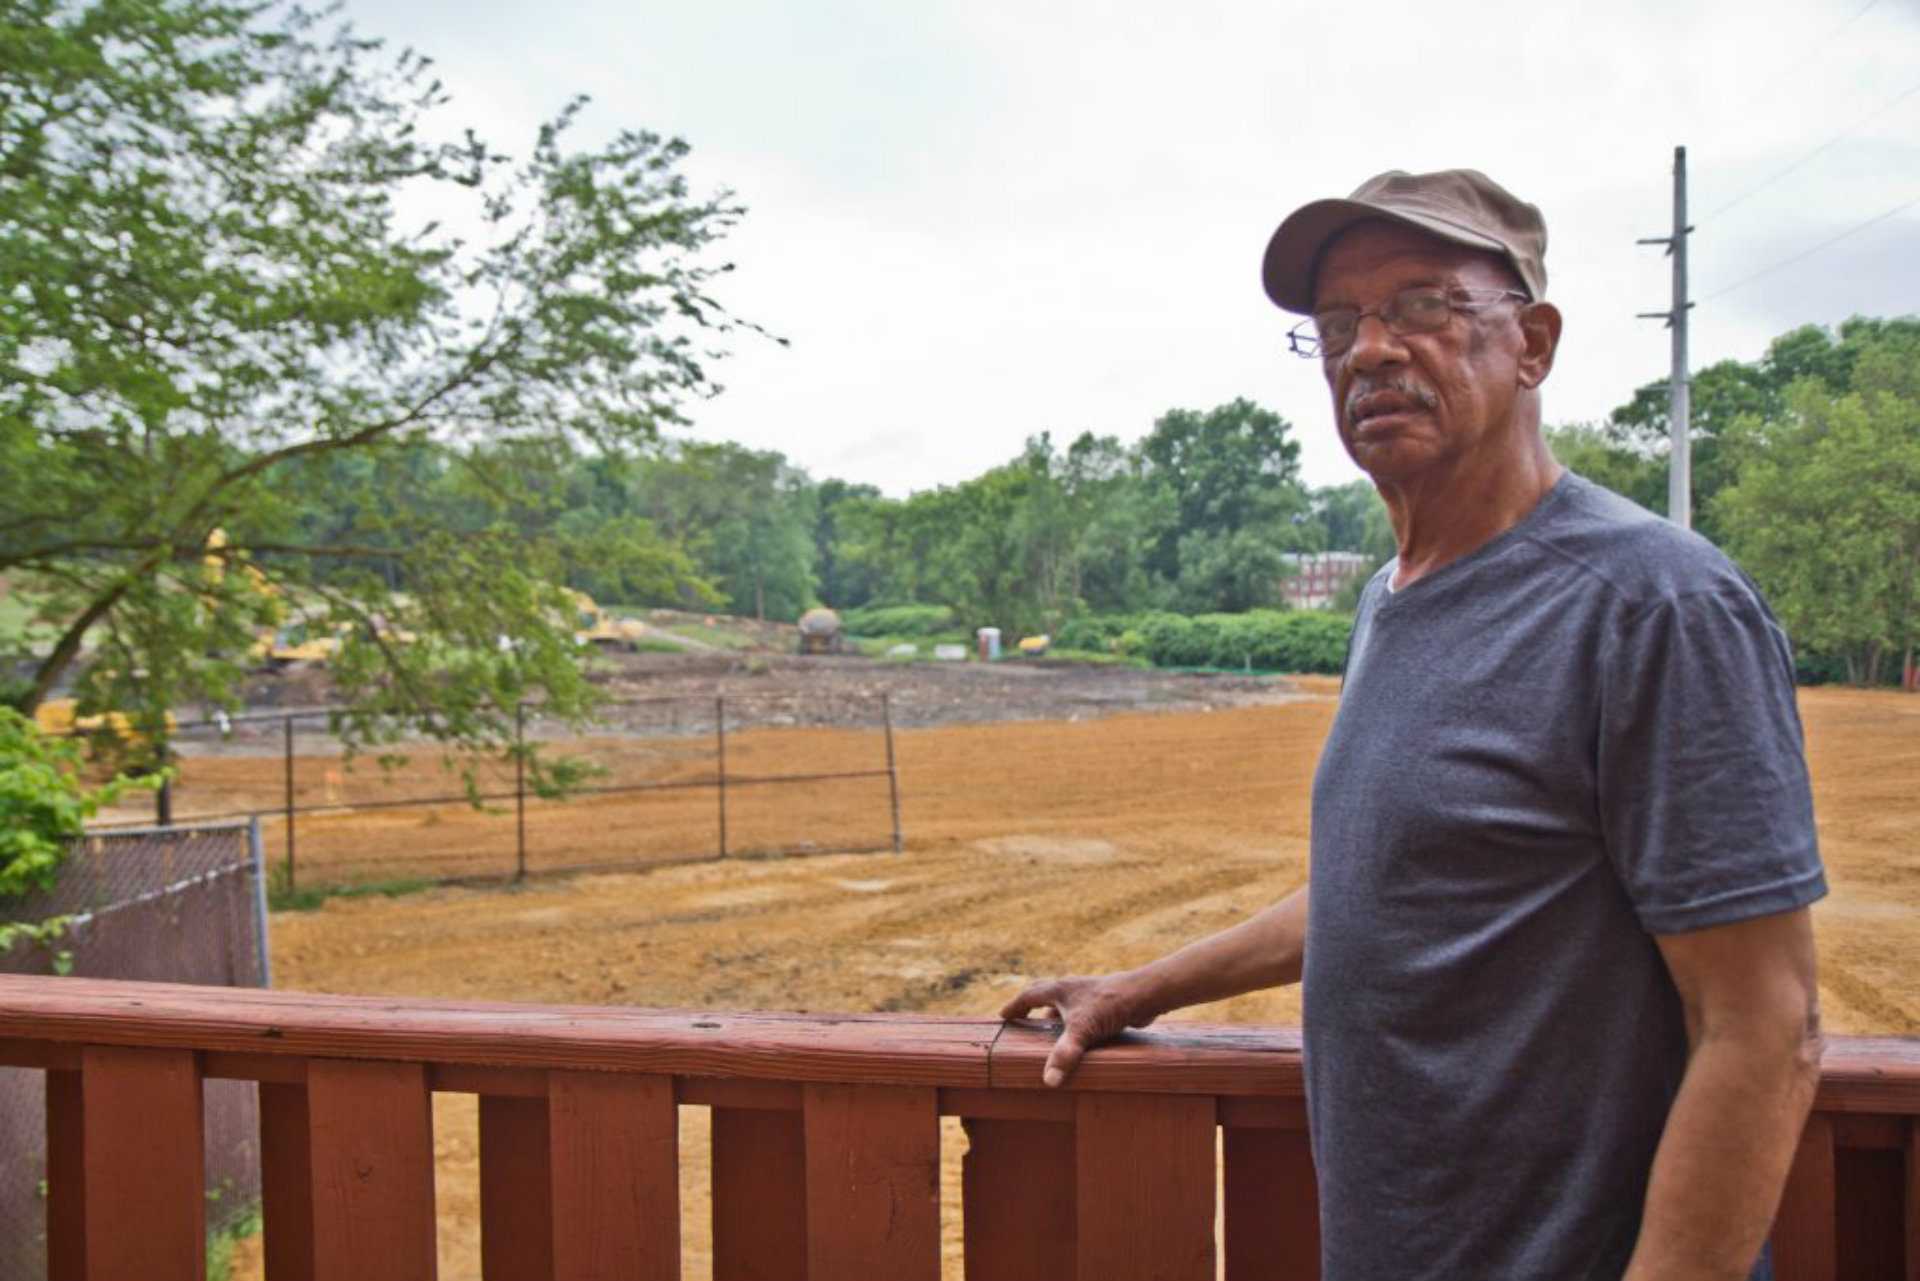 Leo Brudnrage's deck overlooks the efforts at the Eastwick Superfund landfill site. (Kimberly Paynter/WHYY)